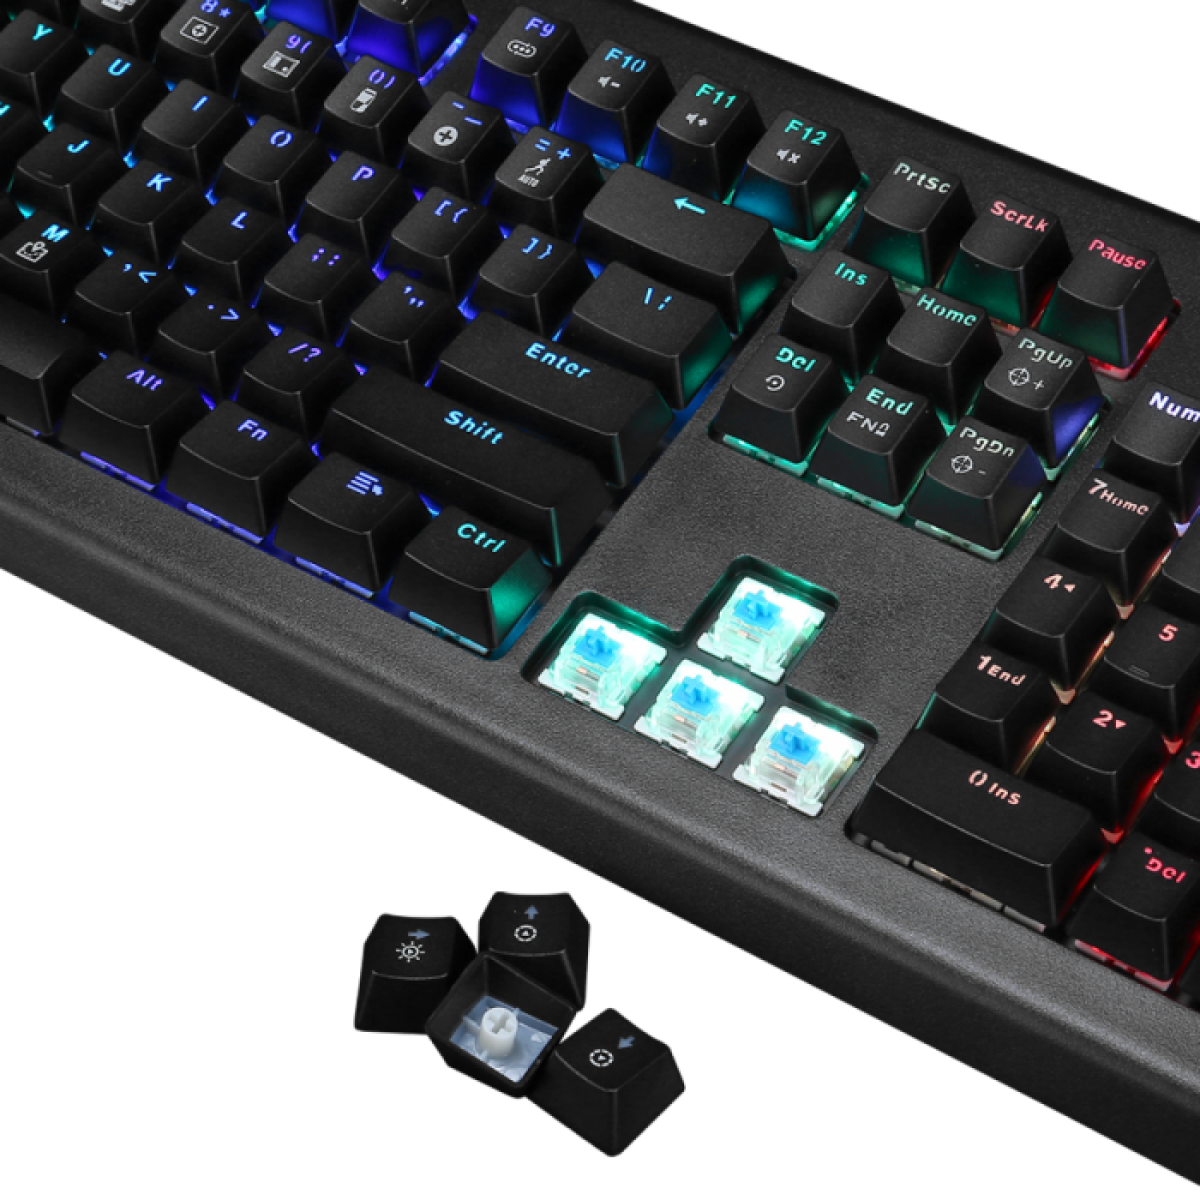 Teclado Mecânico Gamer Marvo Scorpion KG959G, USB 2.0, Switch Azul, LED RGB